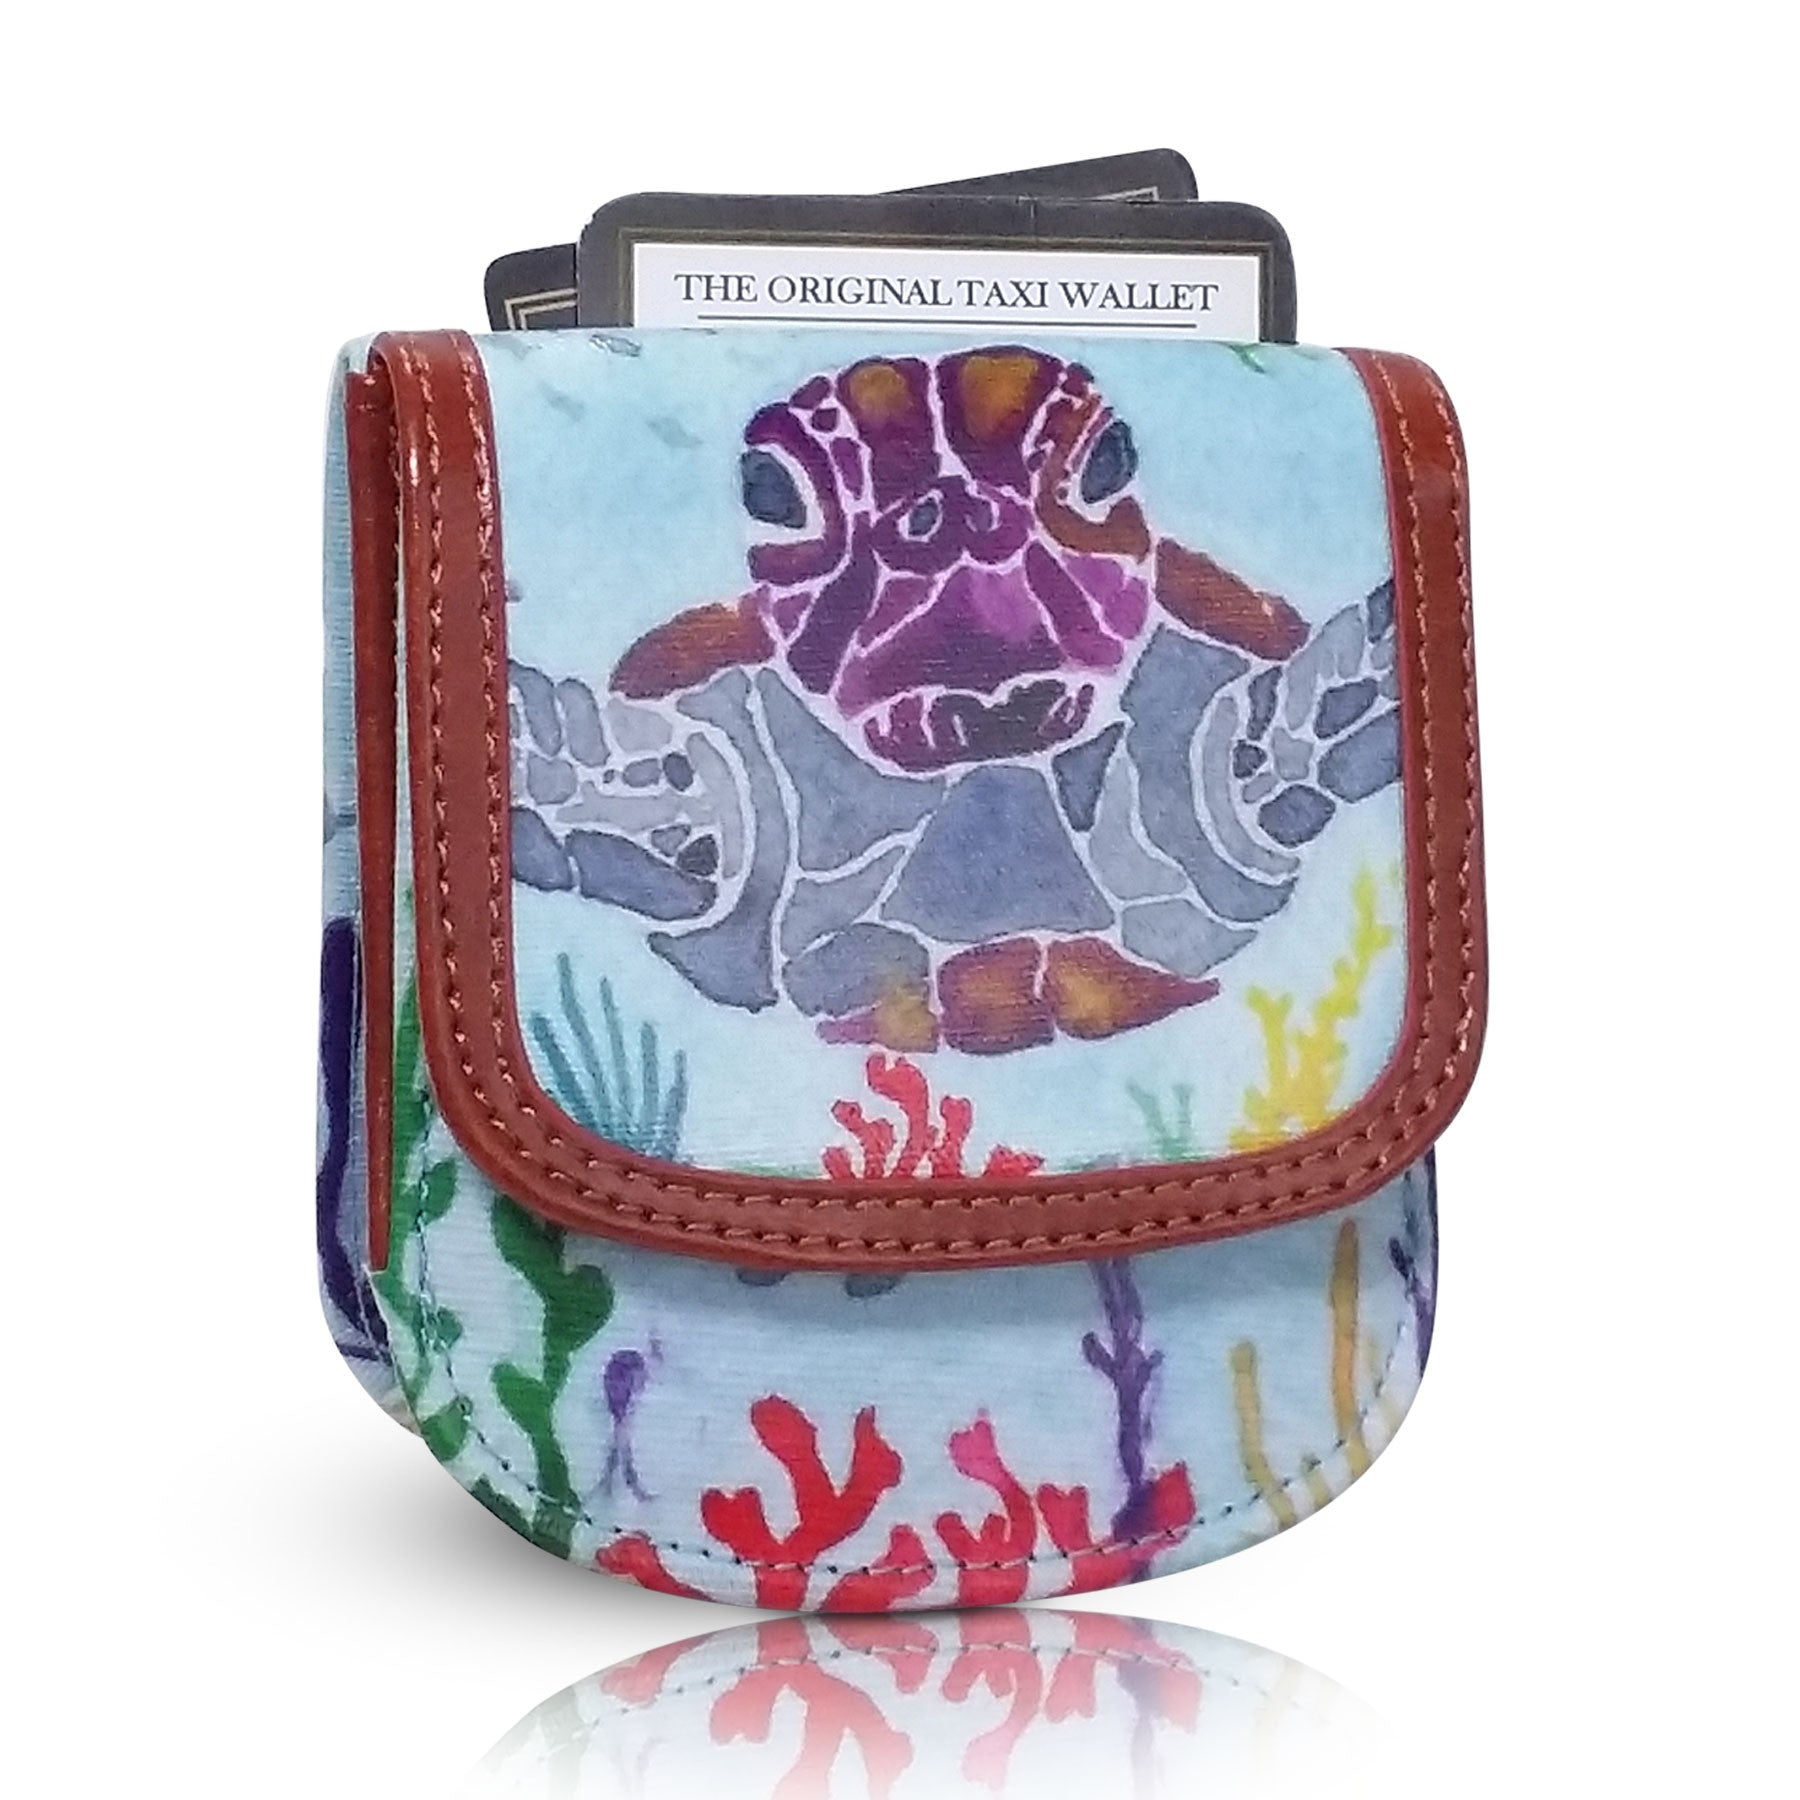 HAWAII SEA TURTLE - Small Folding Minimalist Card Wallet for Women Coin Purse by TAXI WALLET®